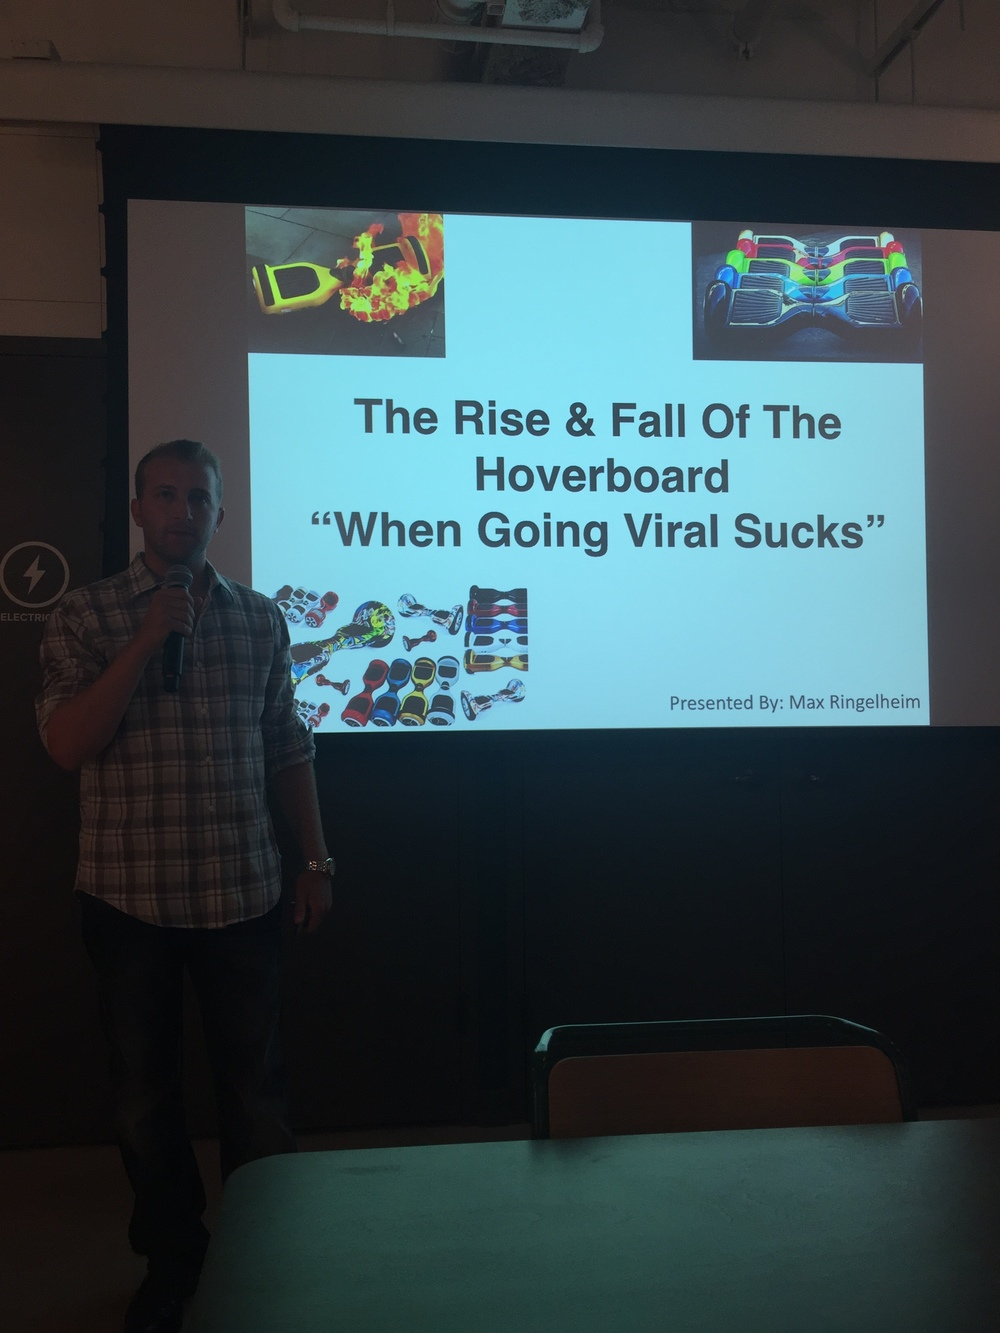 Presenting The Hoverboard Story At WeWork Time Square